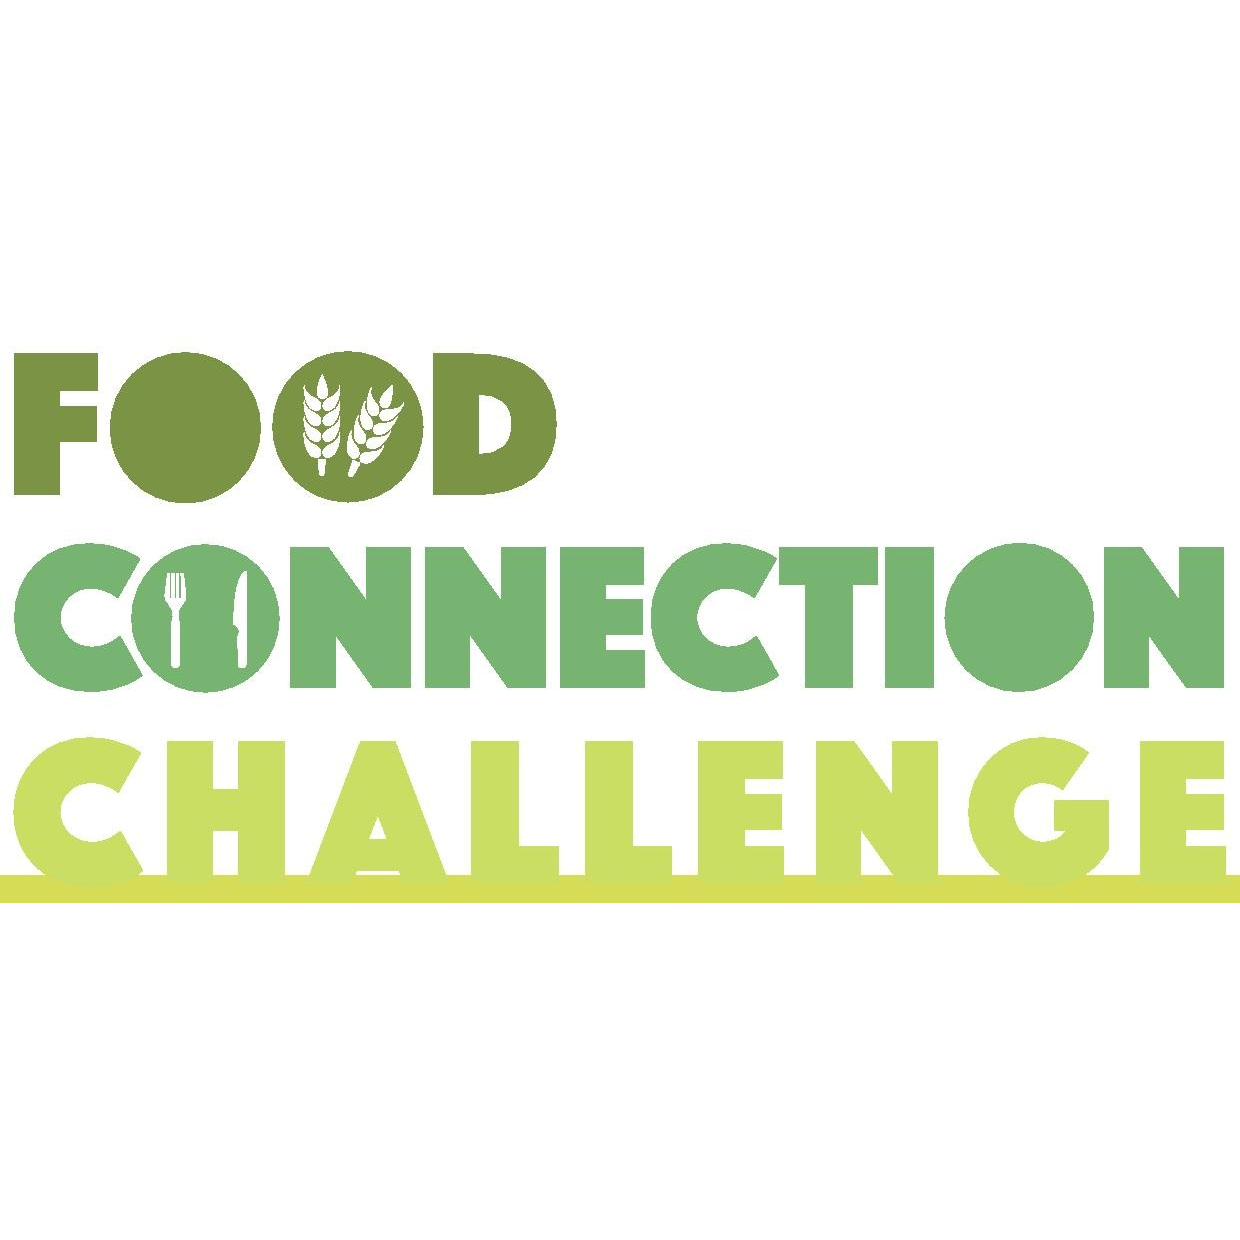 Food Connection Challenge Nigeria: Innovative Solutions to PHLs